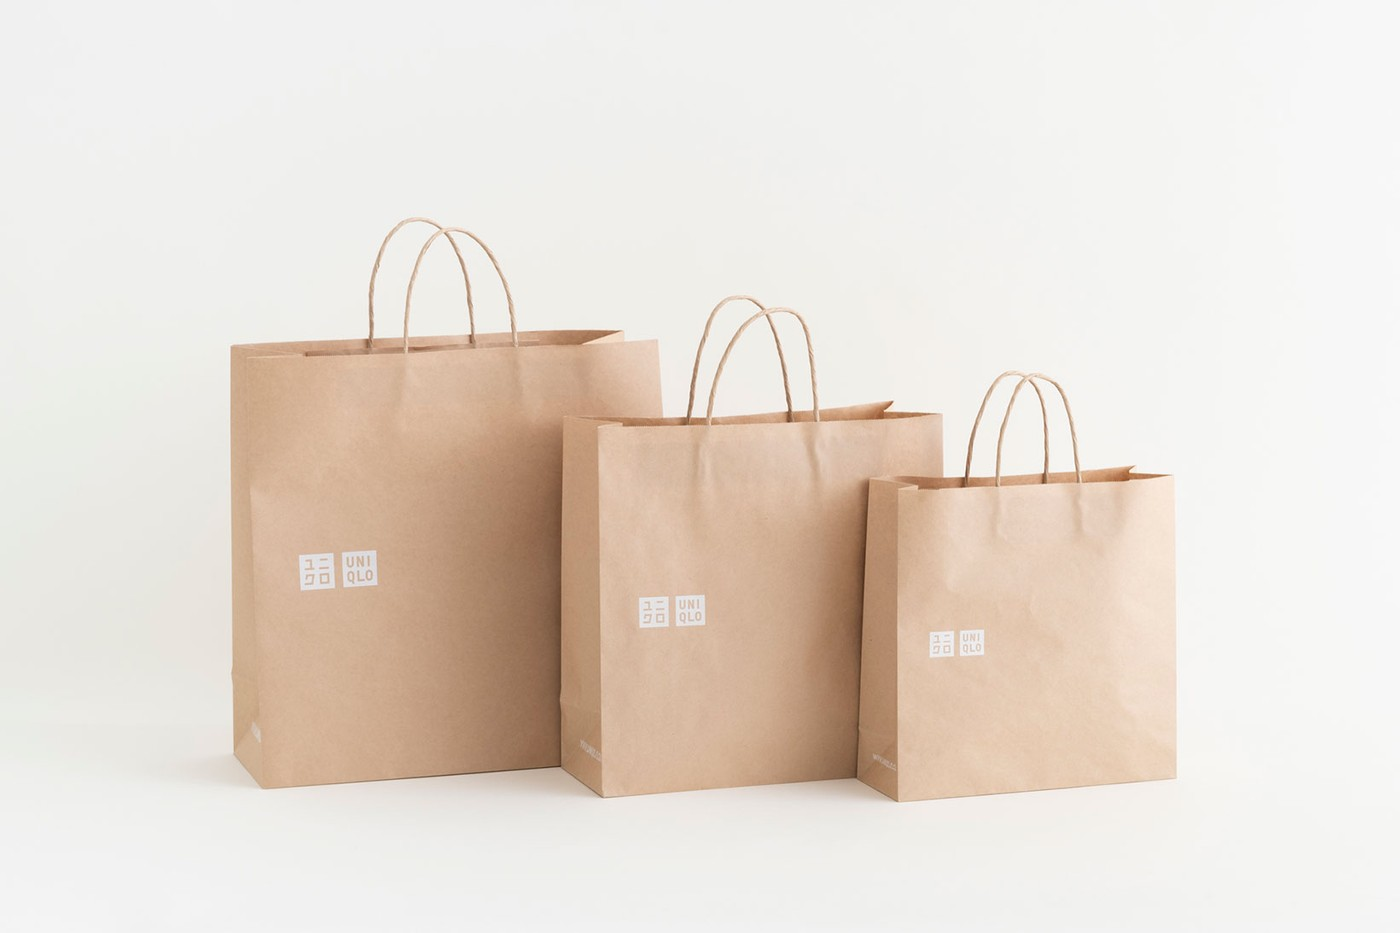 Uniqlo replacing all plastic bags with recycled paper